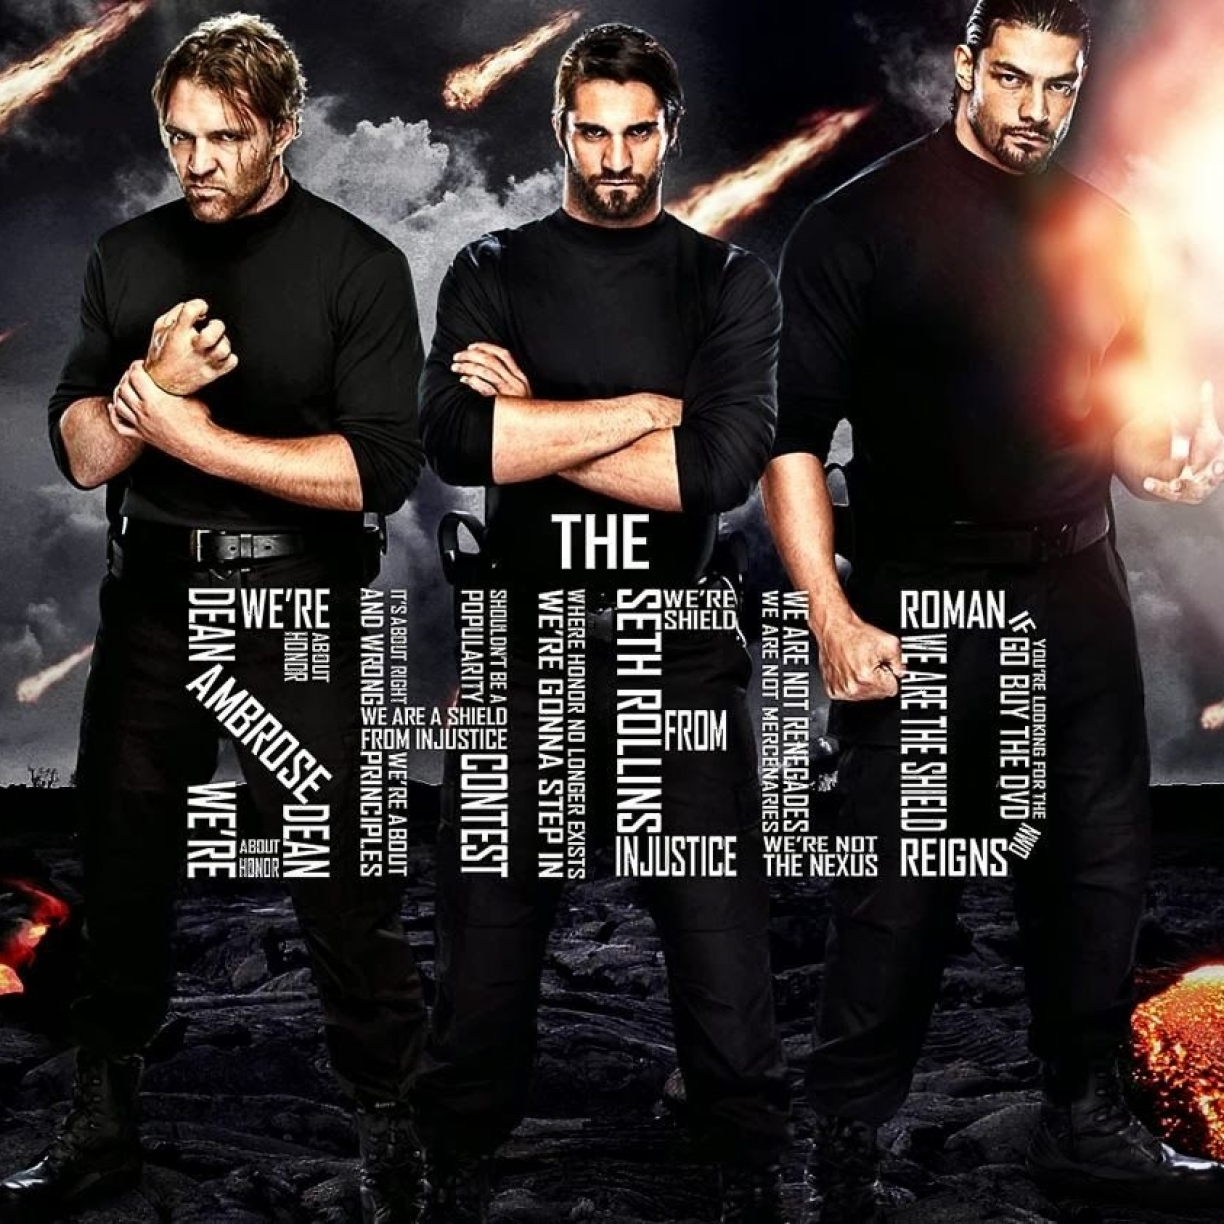 Wwe the shield hd wallpaper - Download pictures of the shield wwe ...